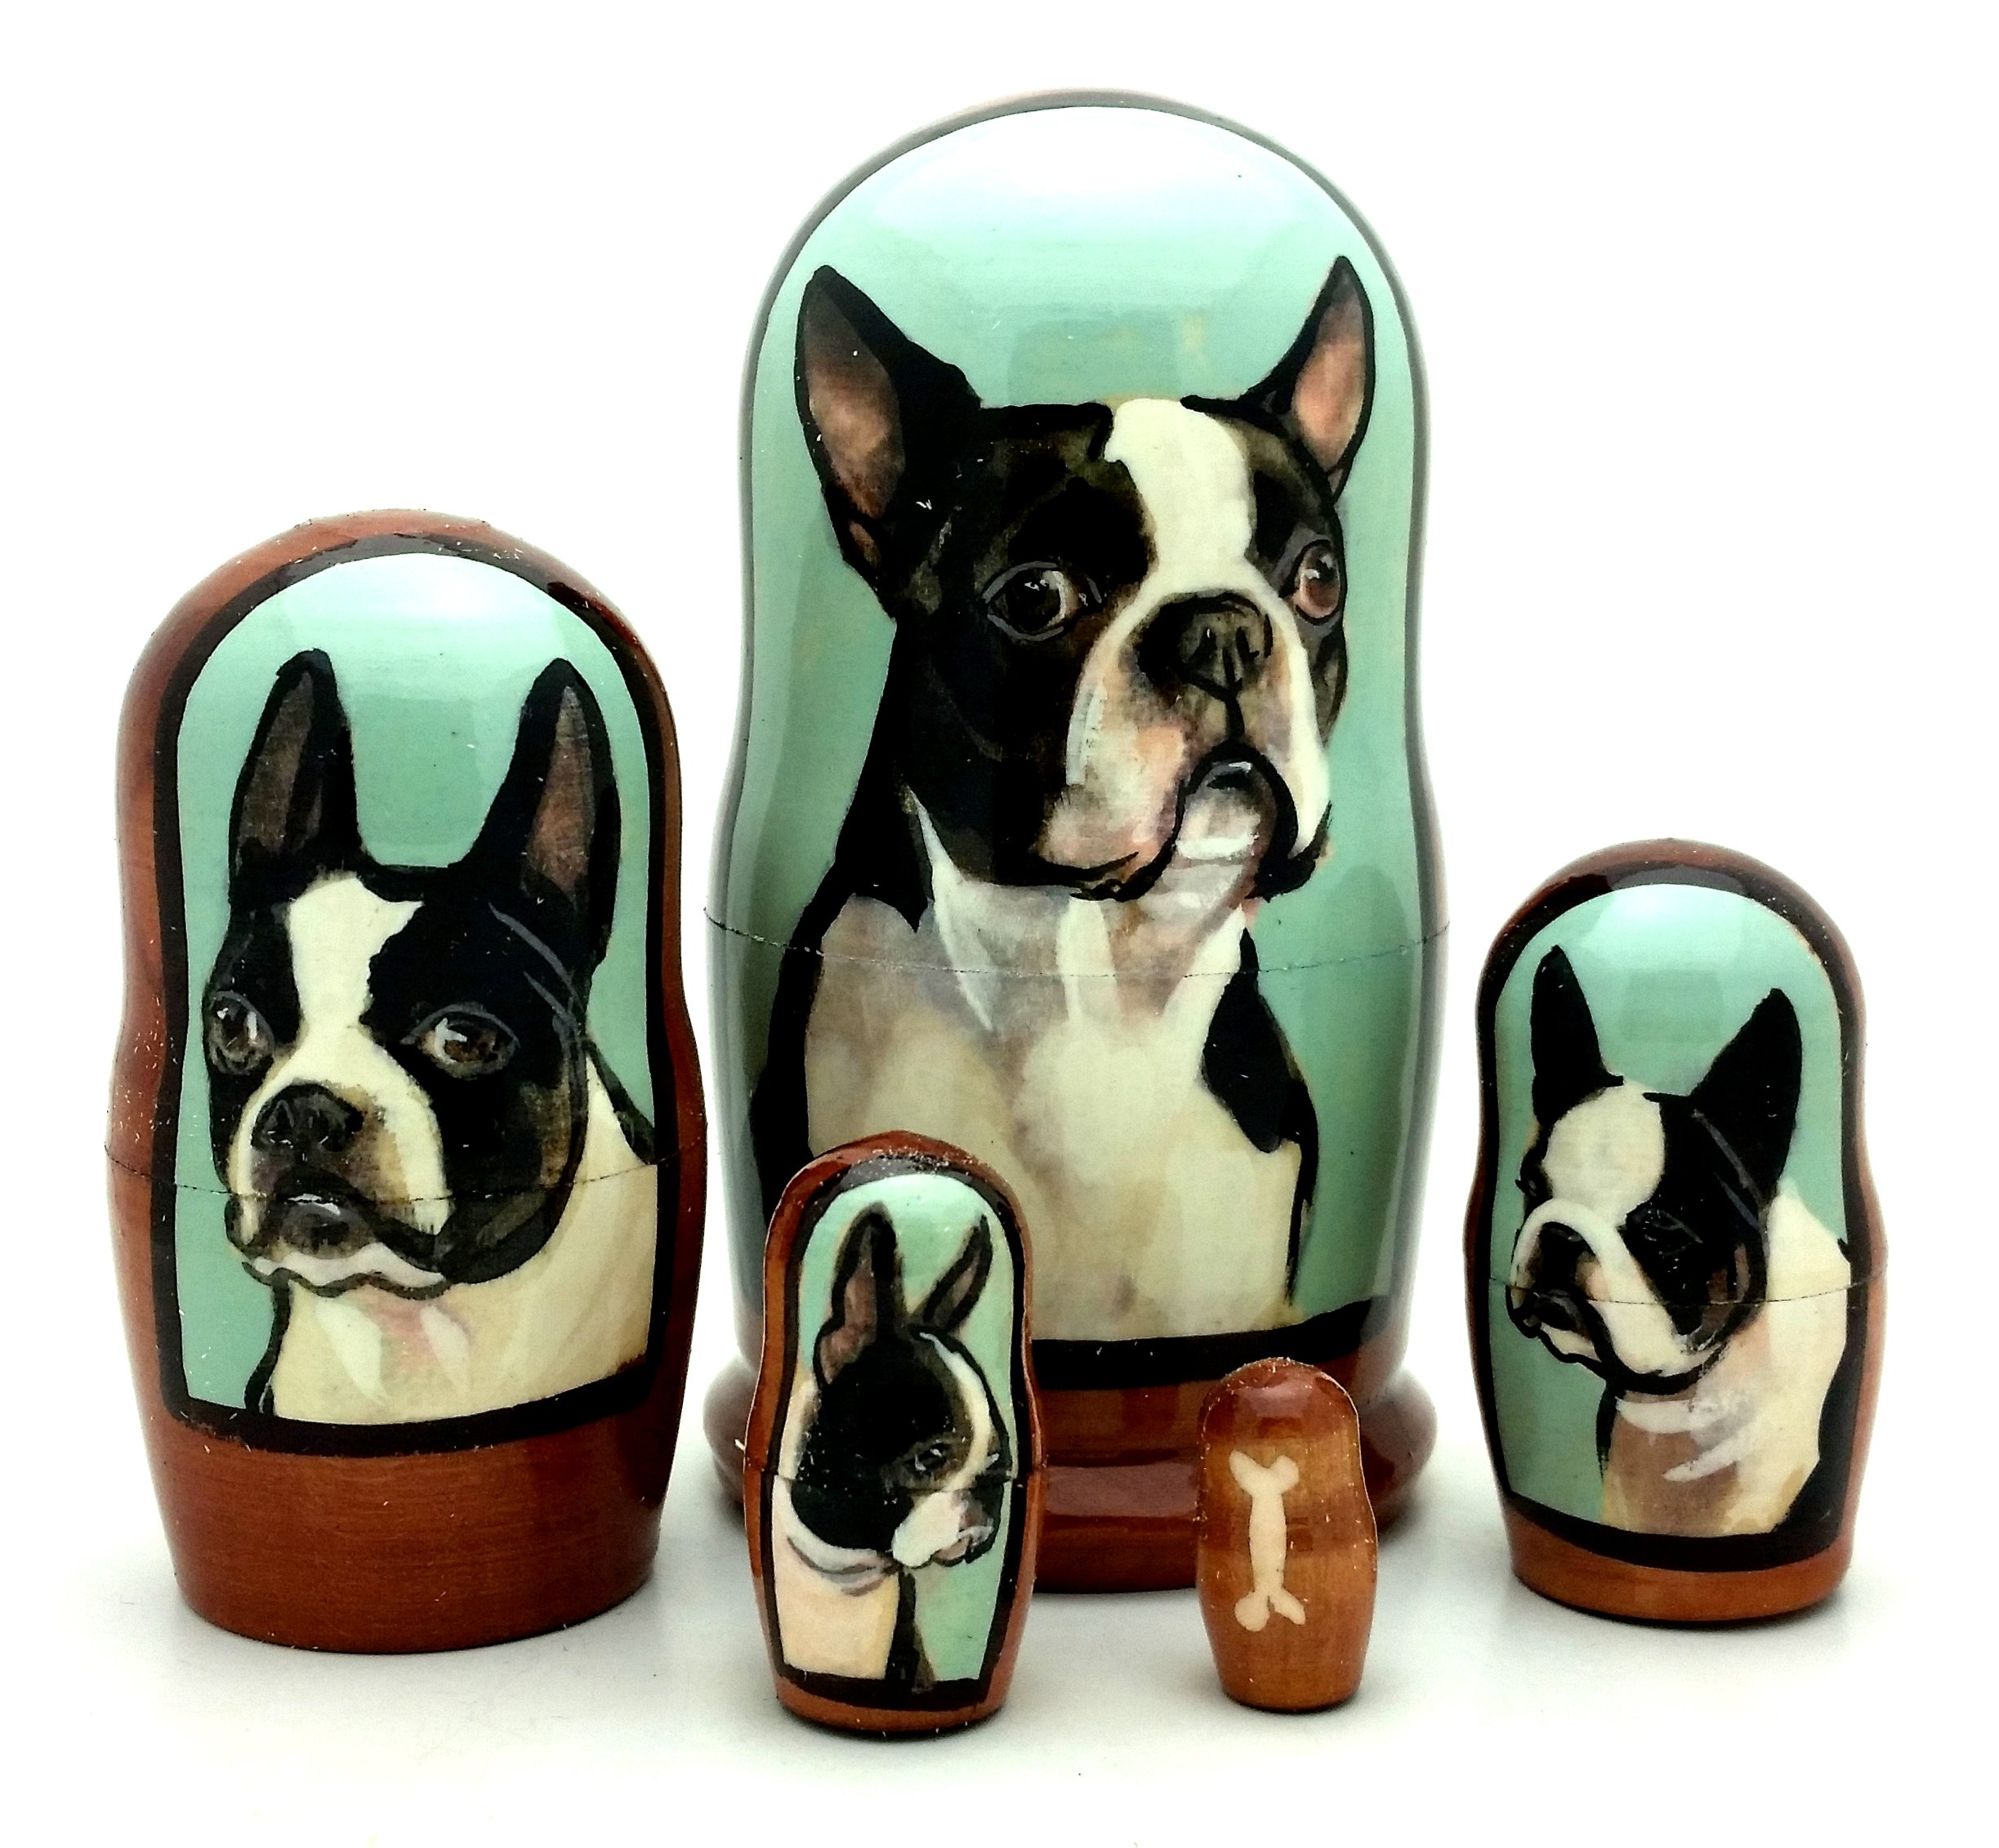 Boston Terrier dog breed nesting dolls Russian Hand made 5 piece matryoshka Set 7''H by BuyRussianGifts